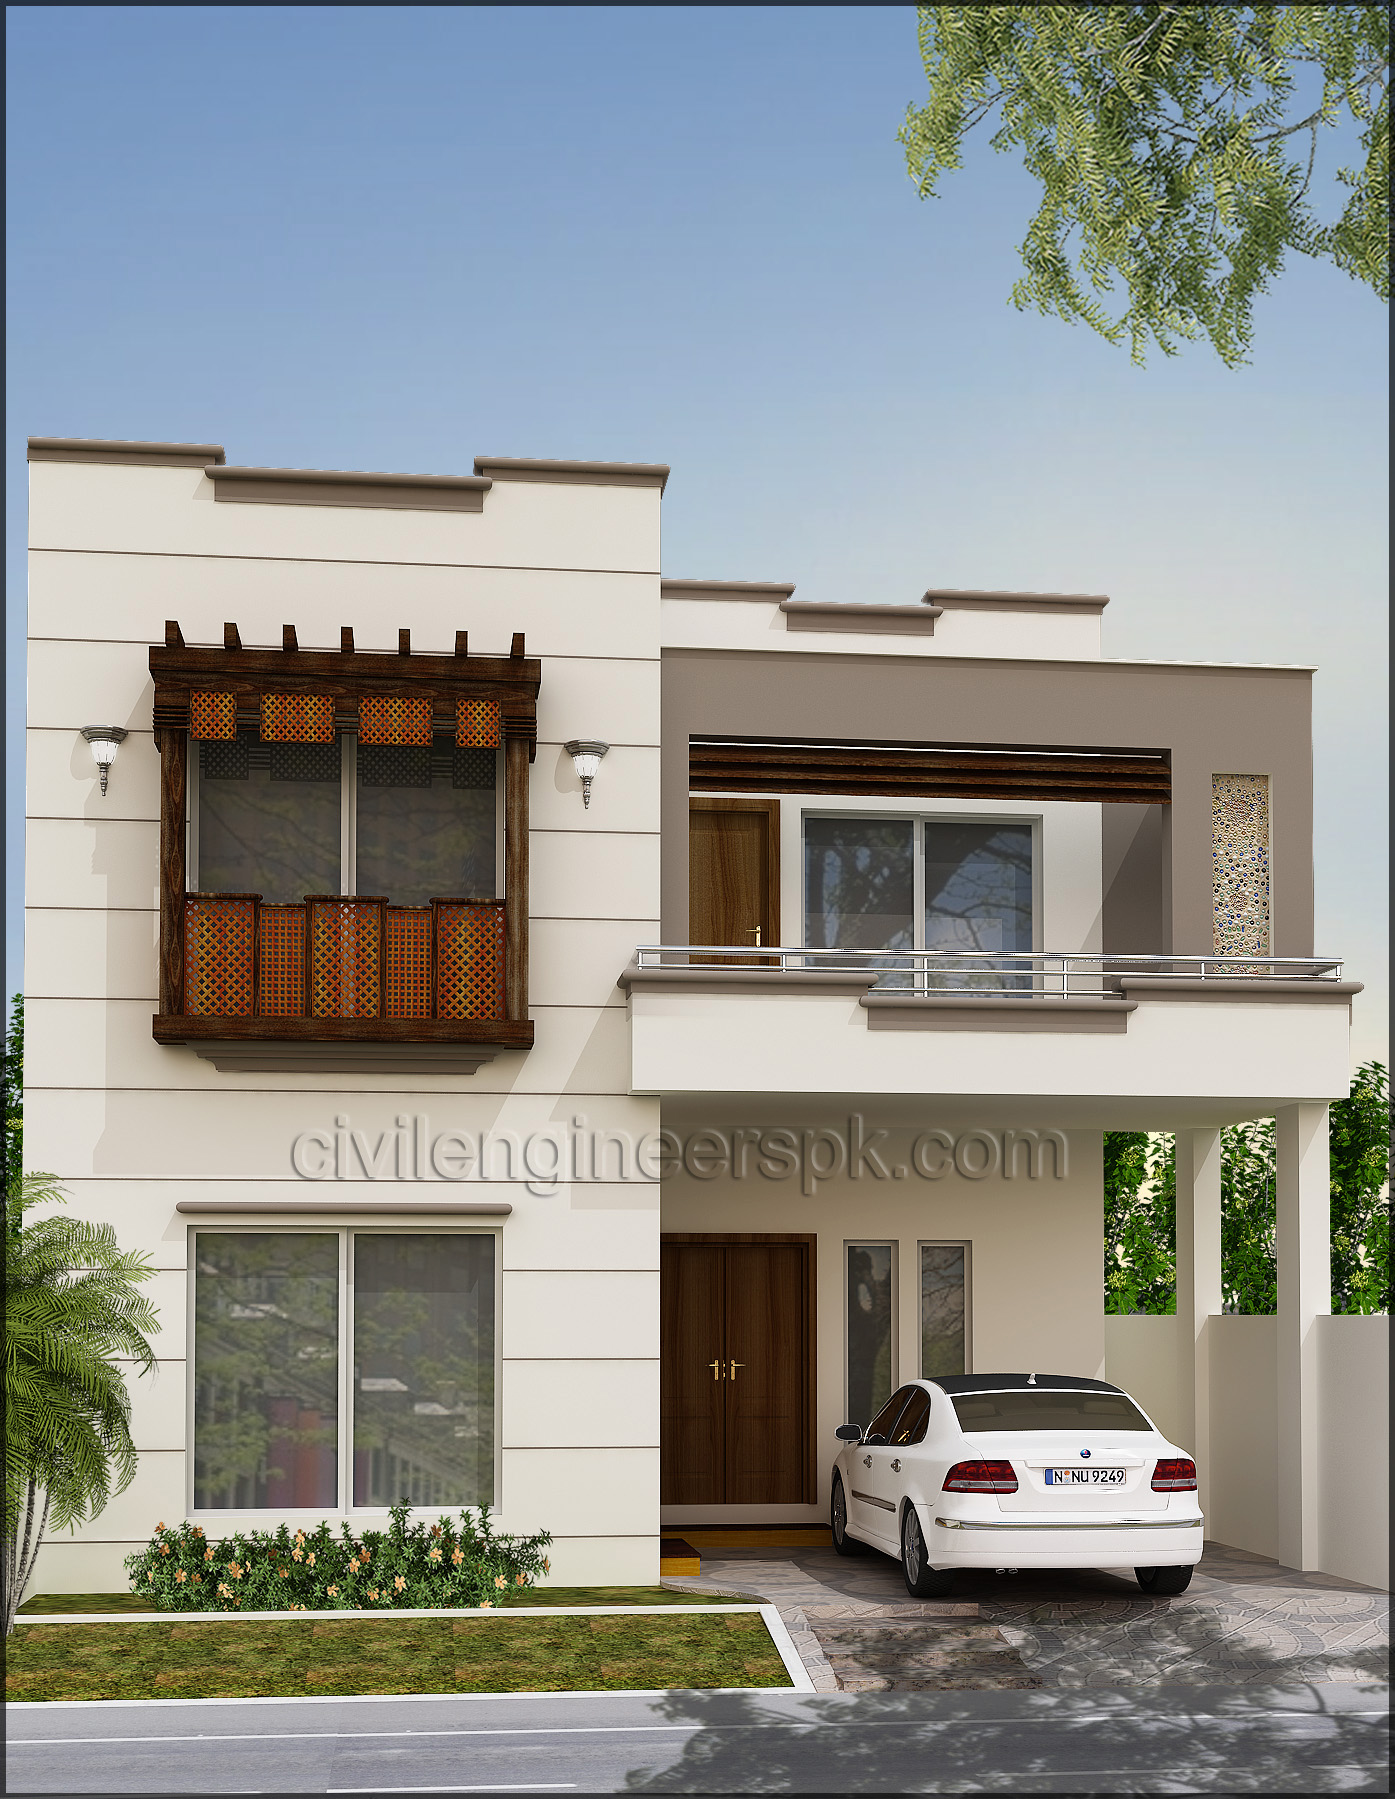 Front views civil engineers pk for Front view house plans